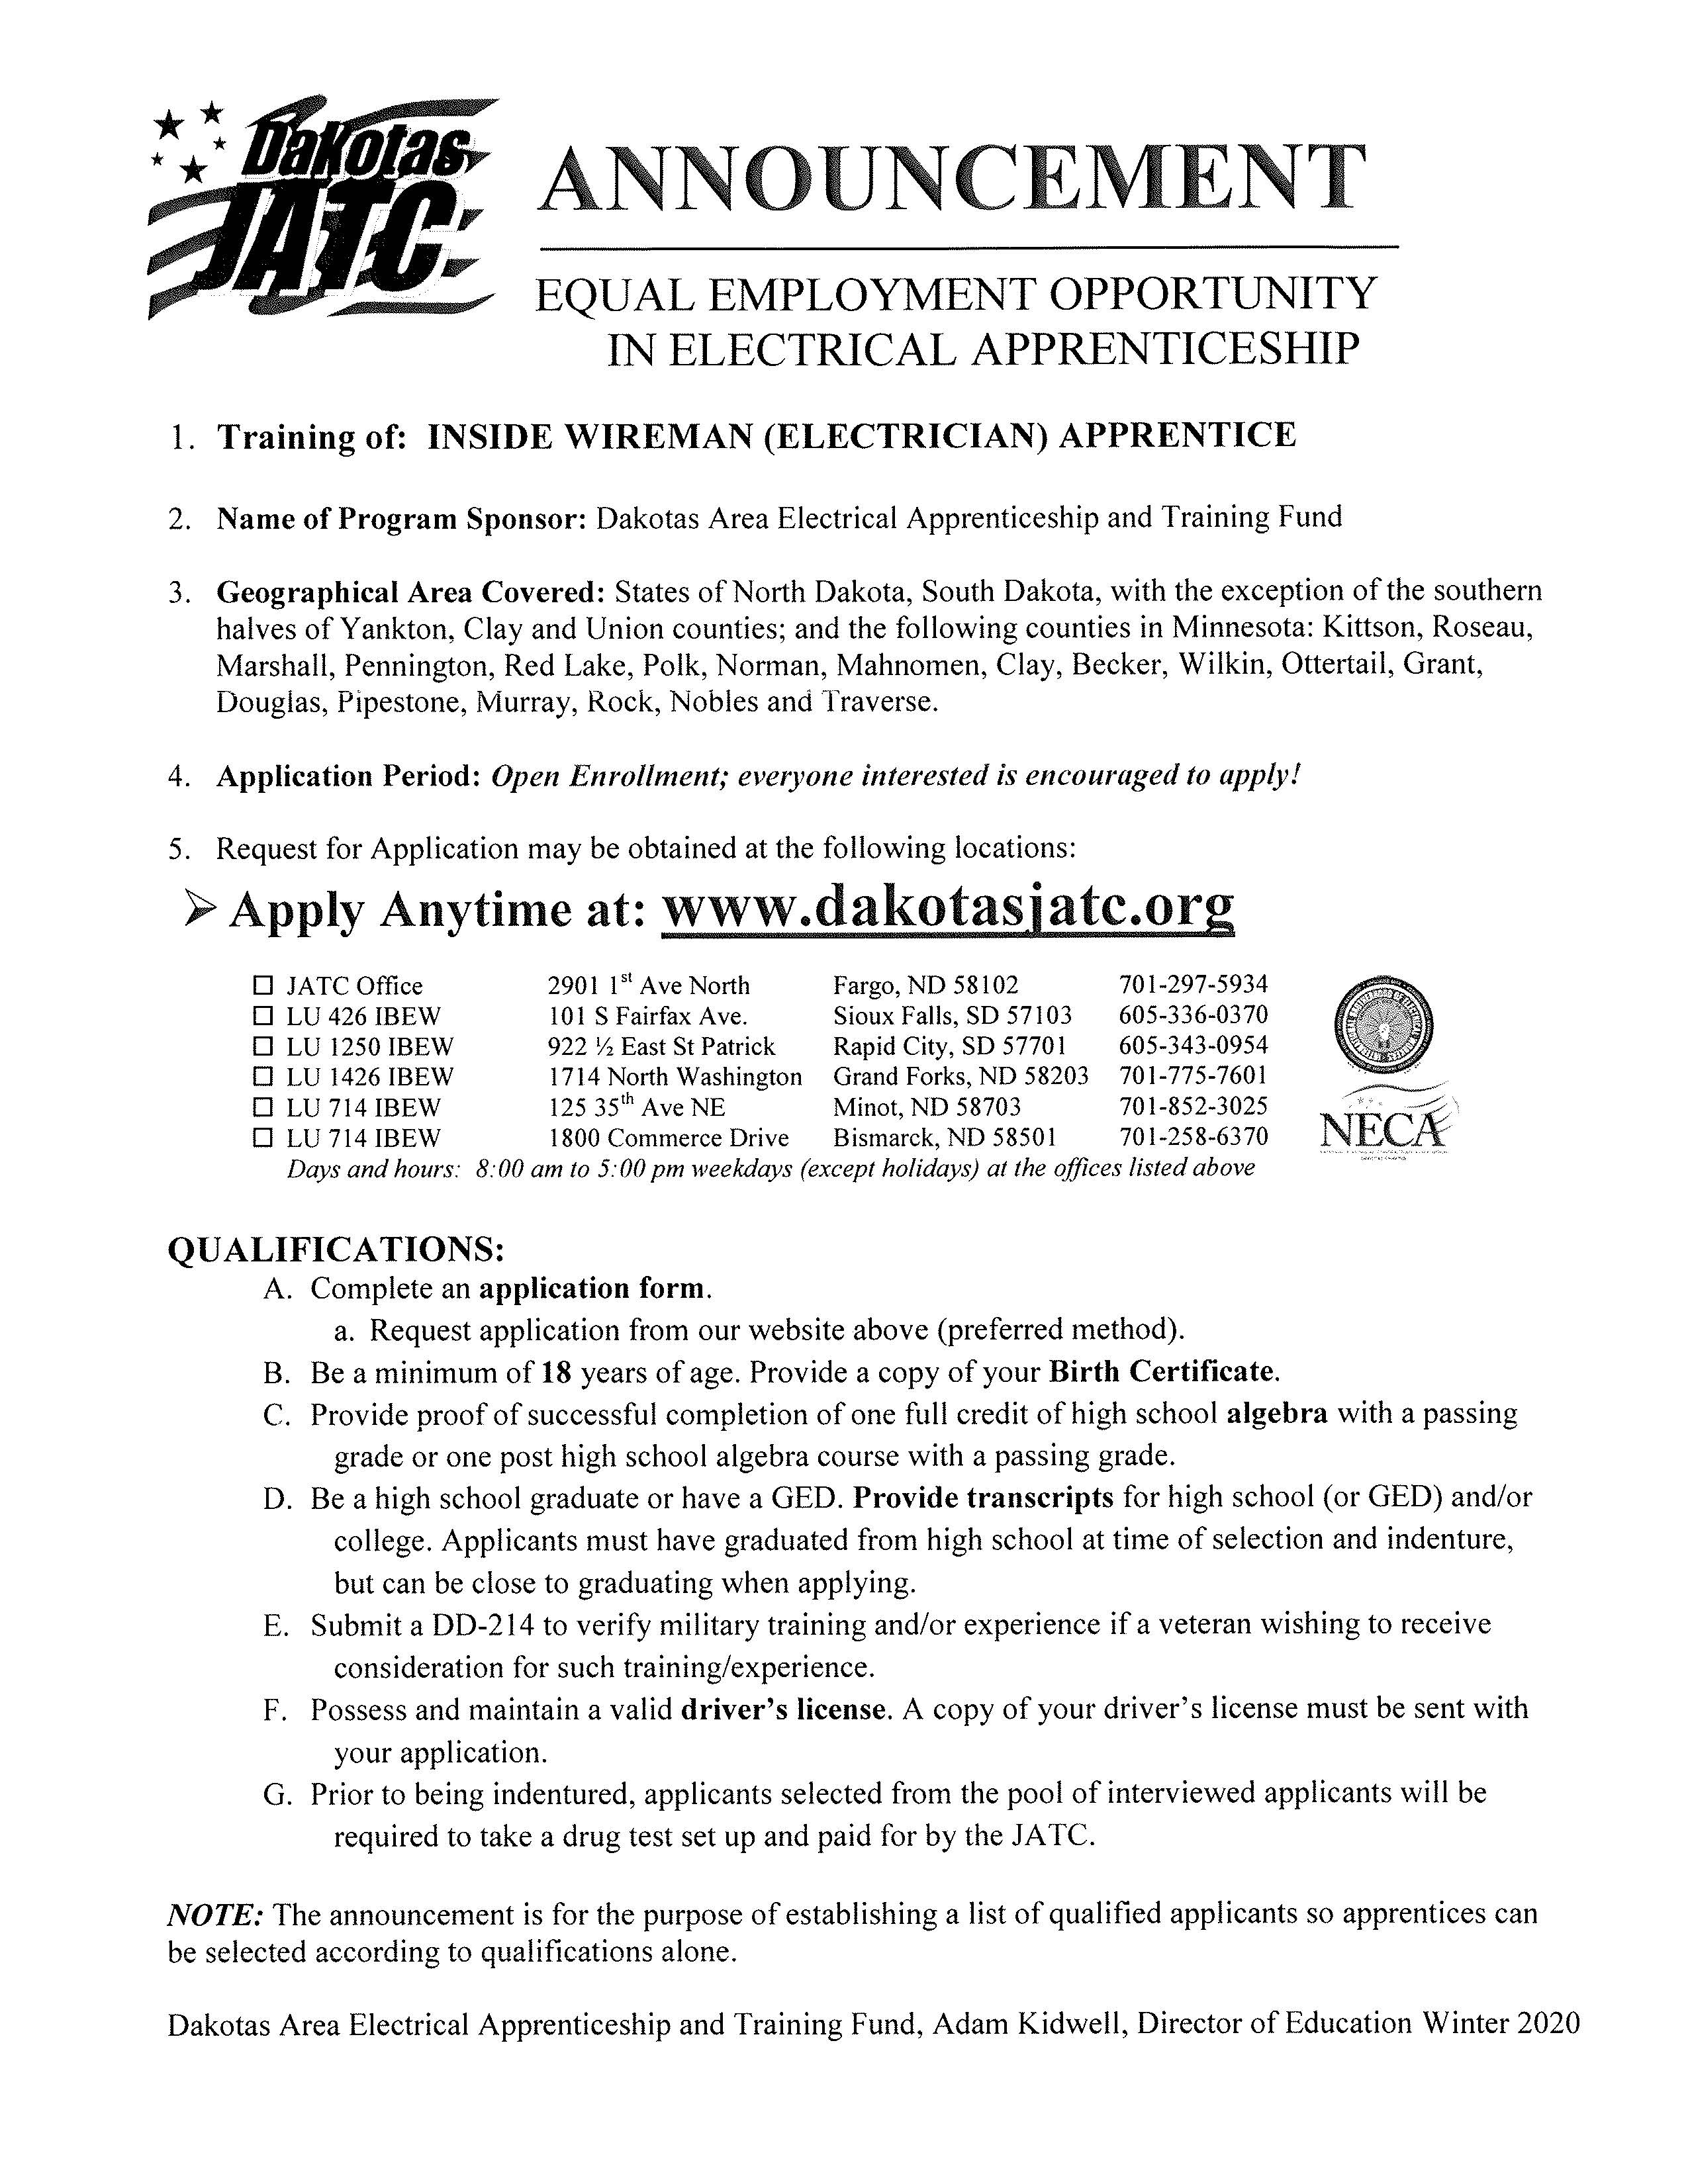 apply anytime at www.dakotasjatc.org